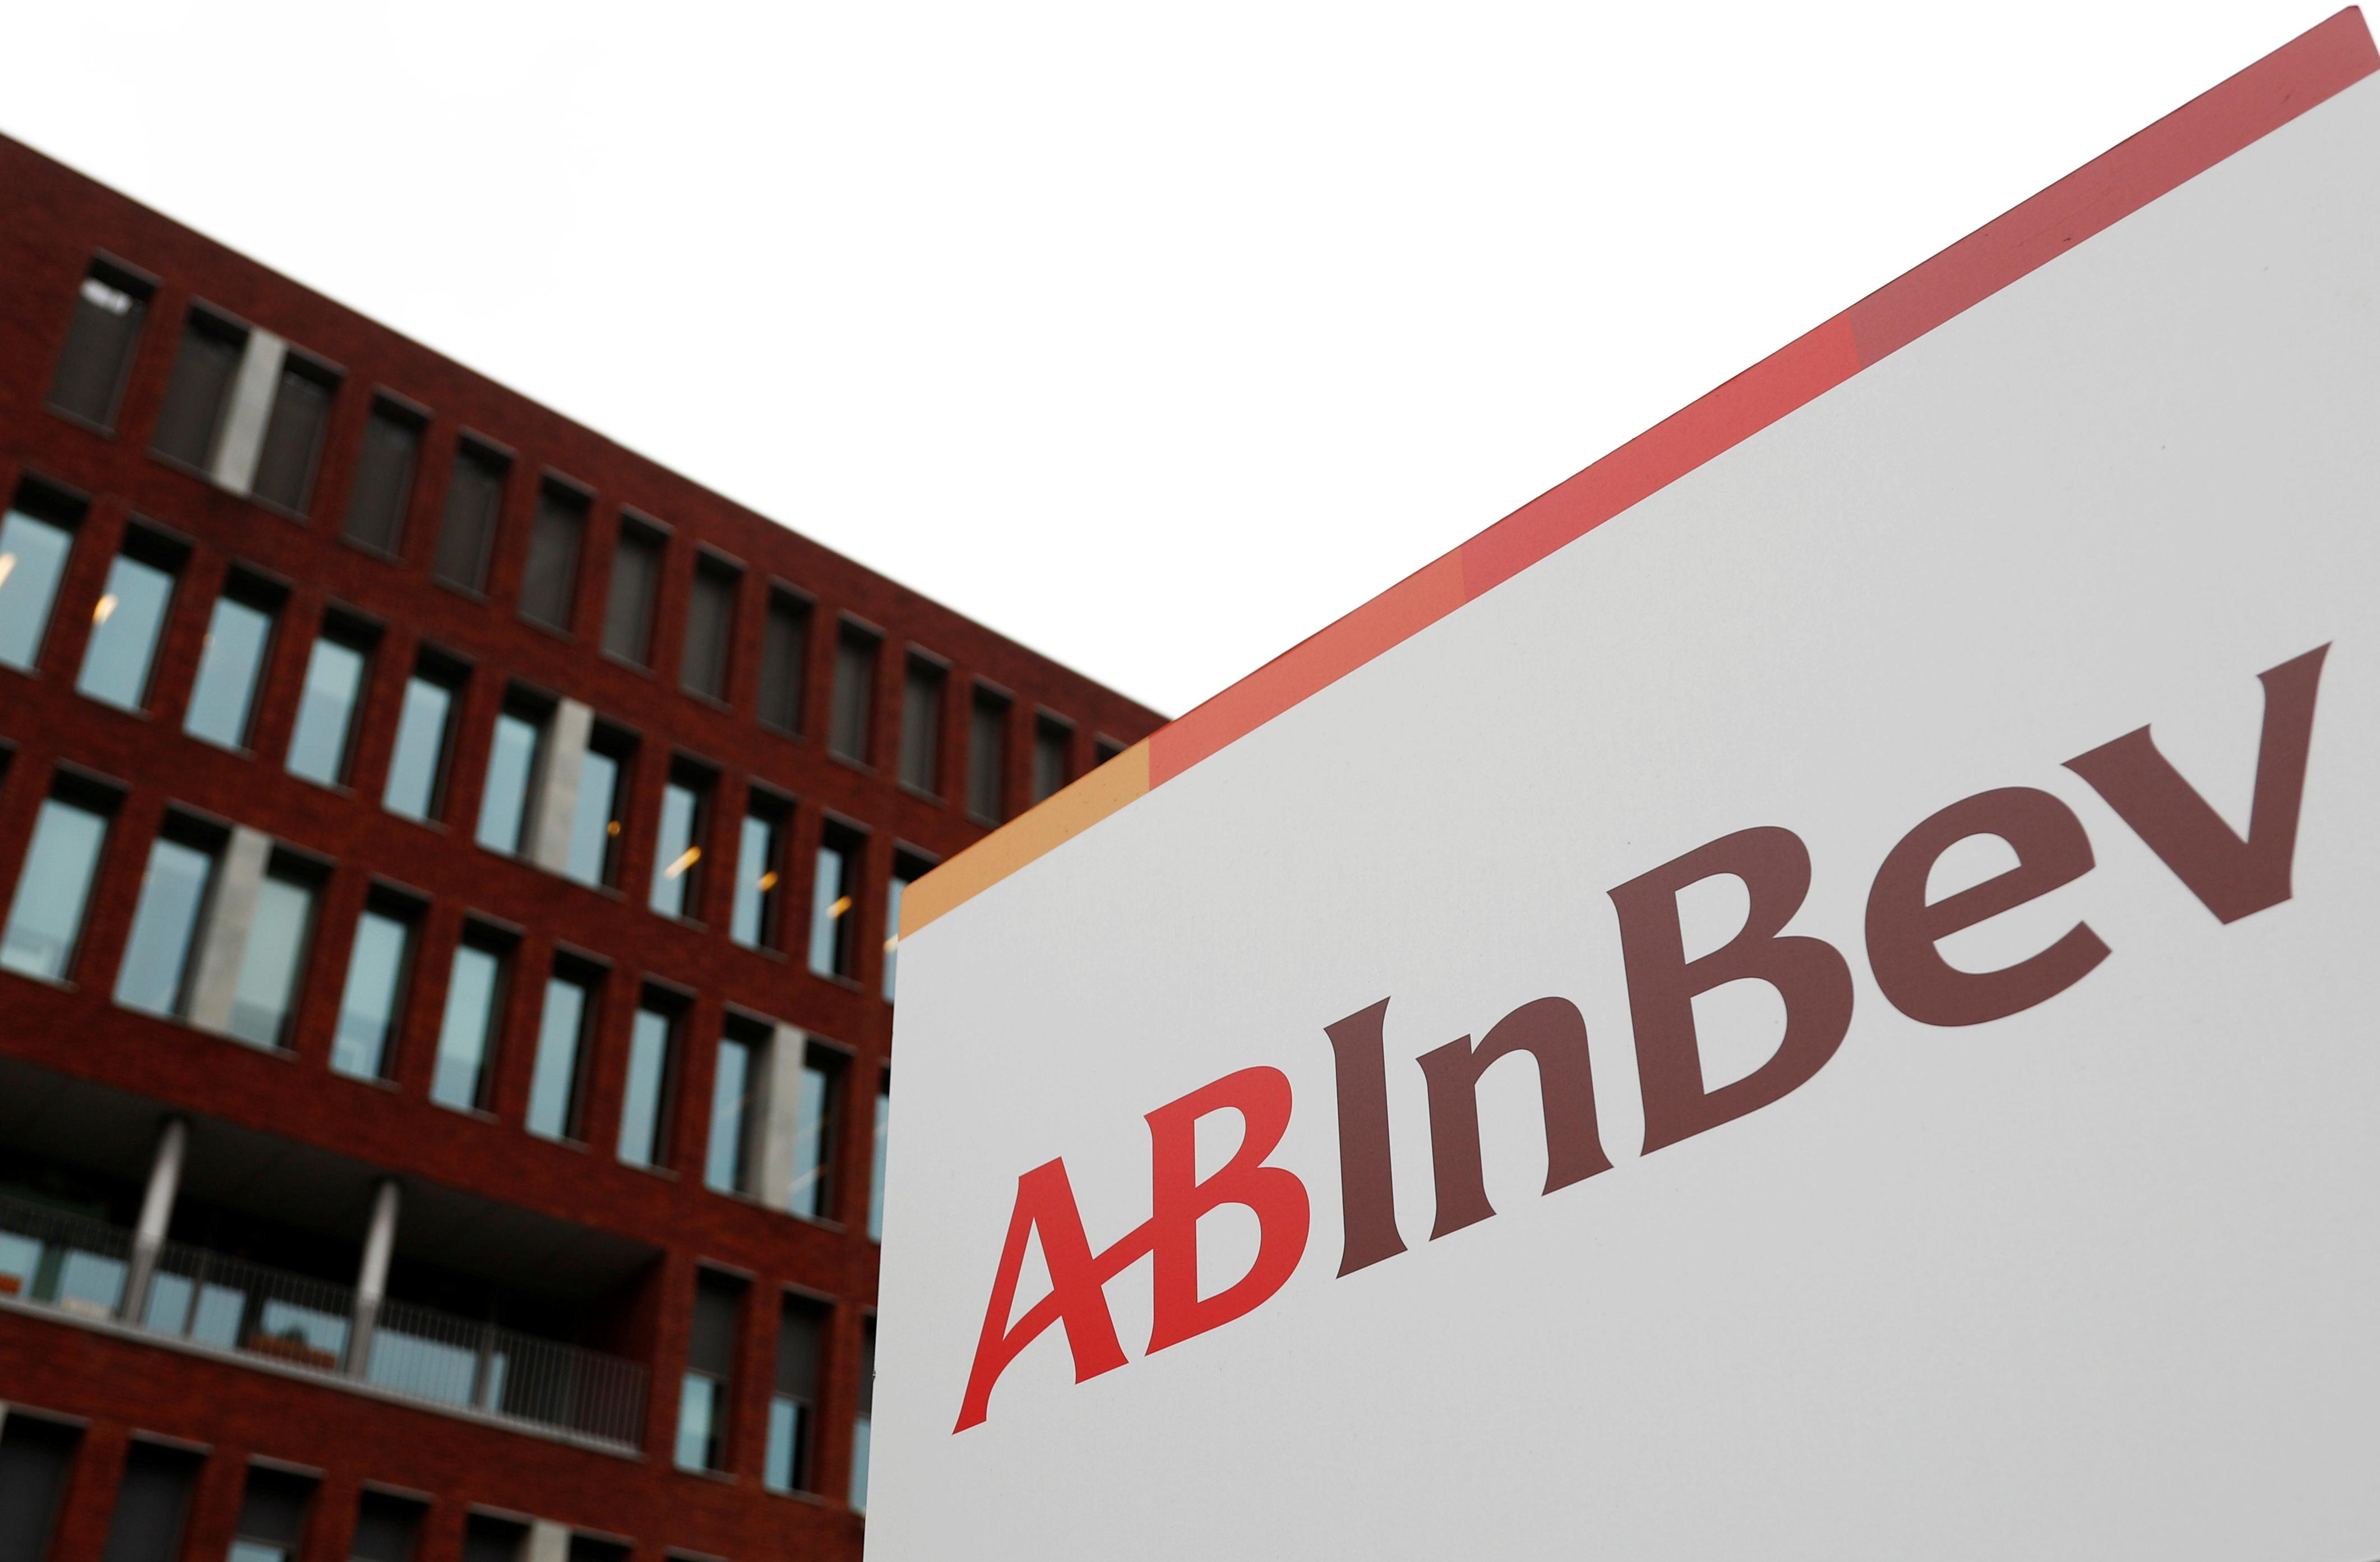 Indian court rejects AB InBev's plea to put New Delhi ban on hold